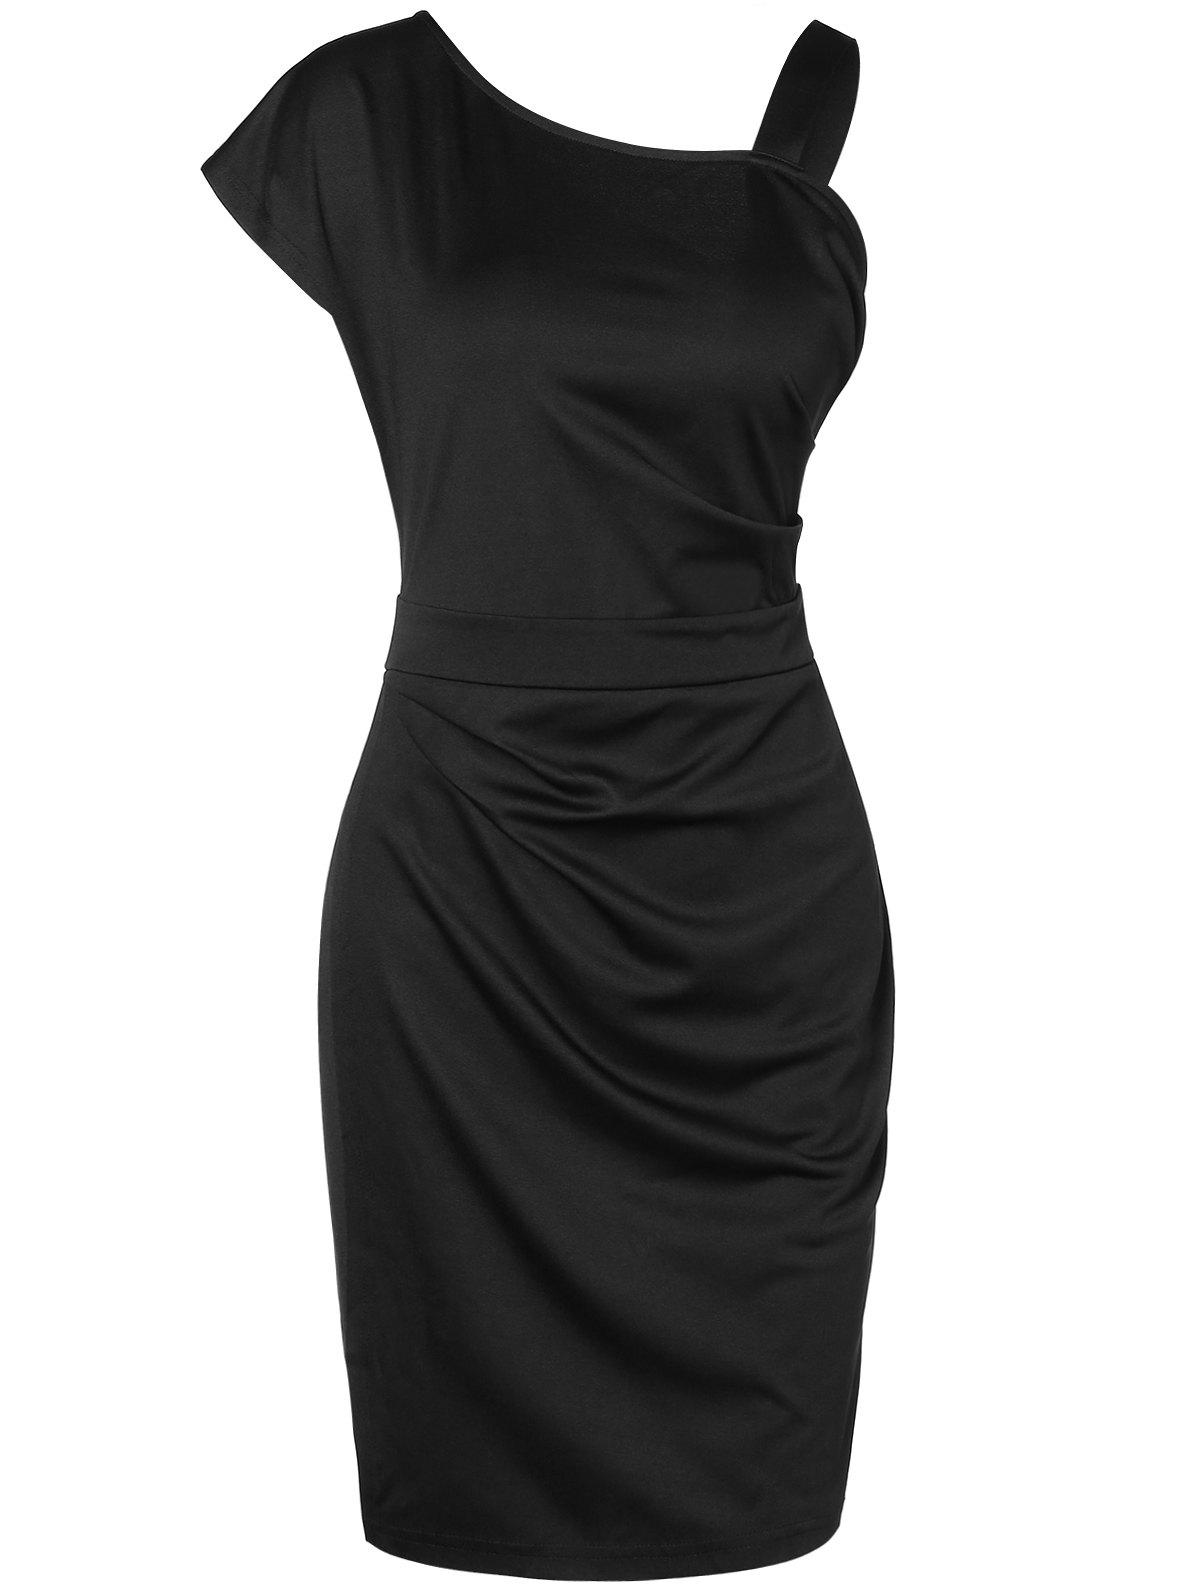 Hot Skew Collar Solid Sheath Dress